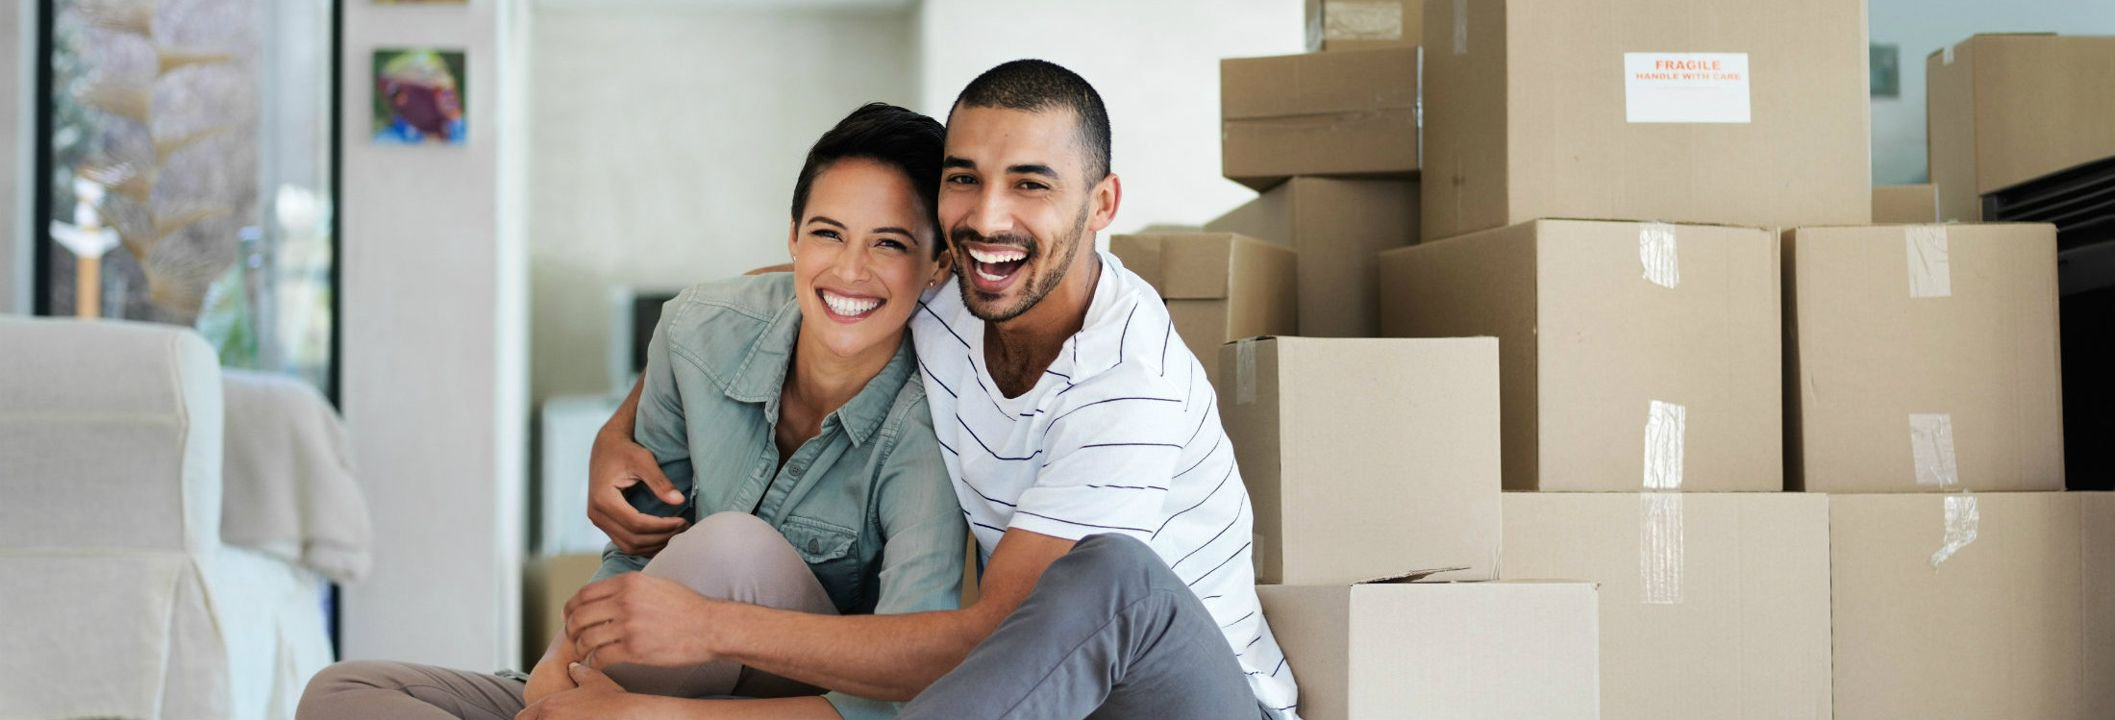 Silicon Valley Relocation Services, corporate relocation realtor package in California